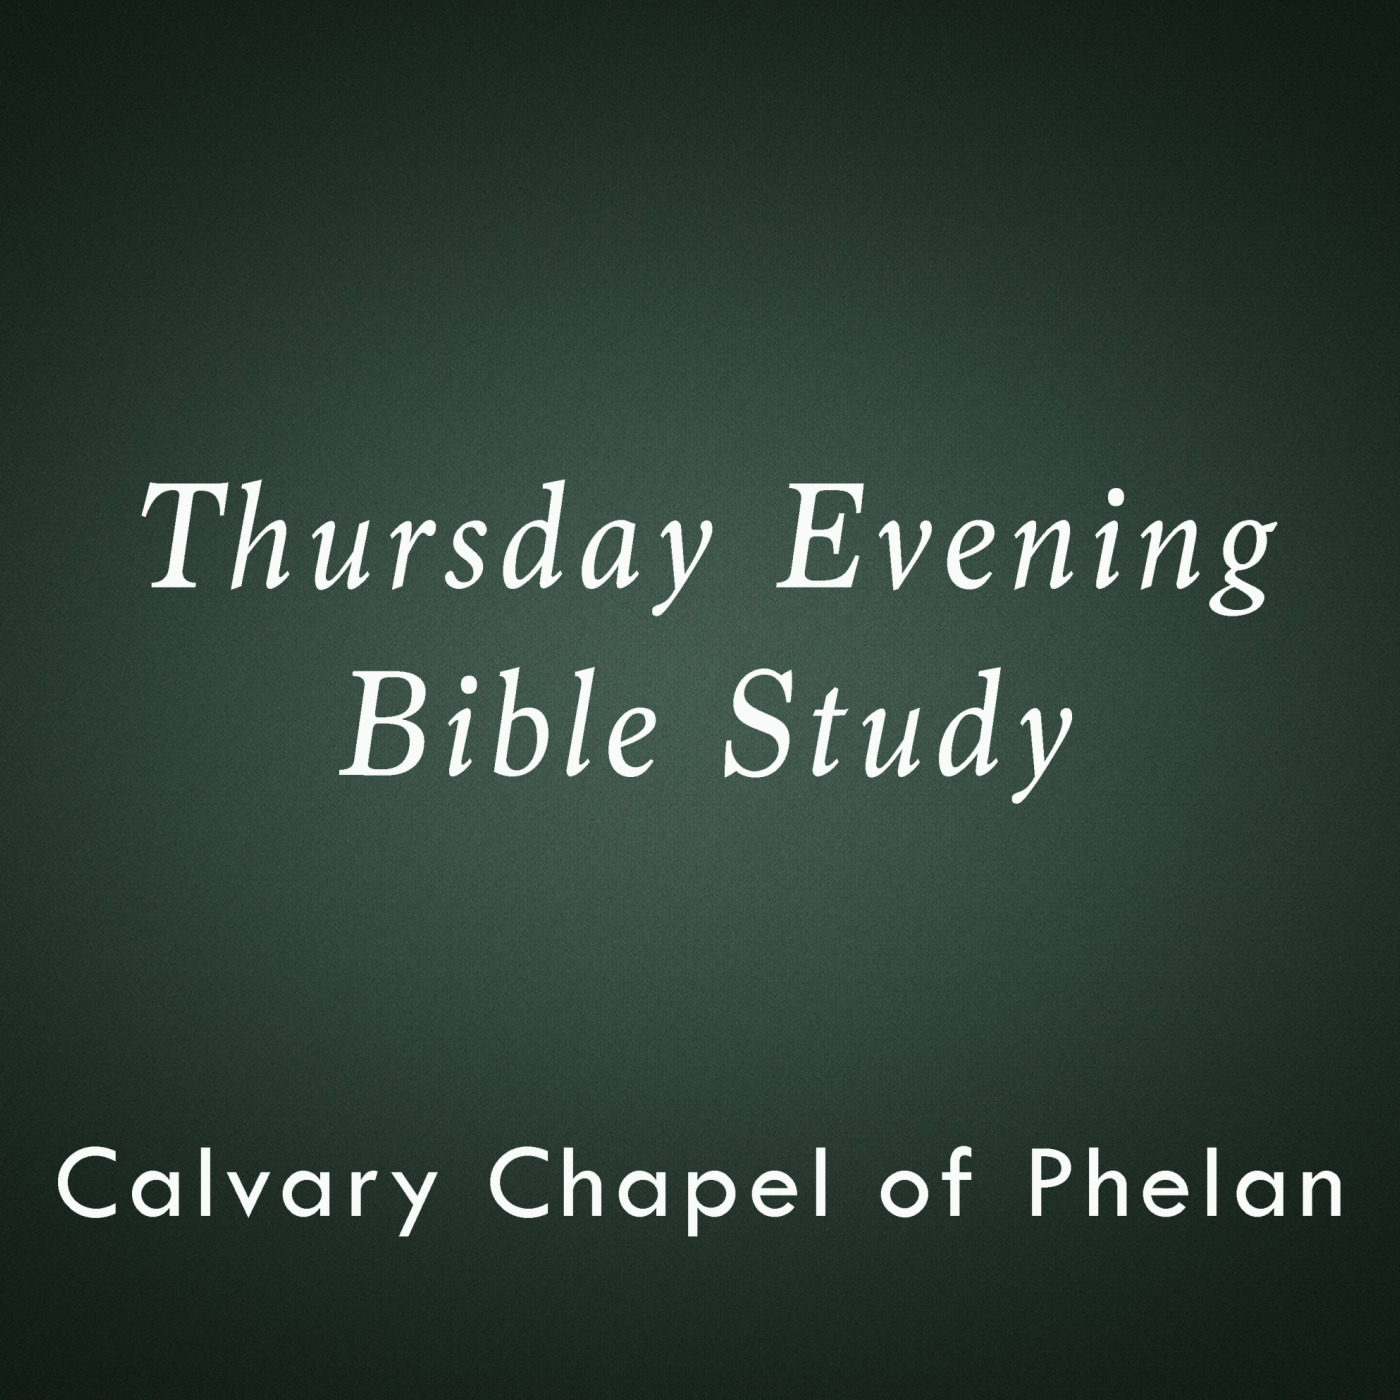 Calvary Chapel of Phelan - Mid-week study